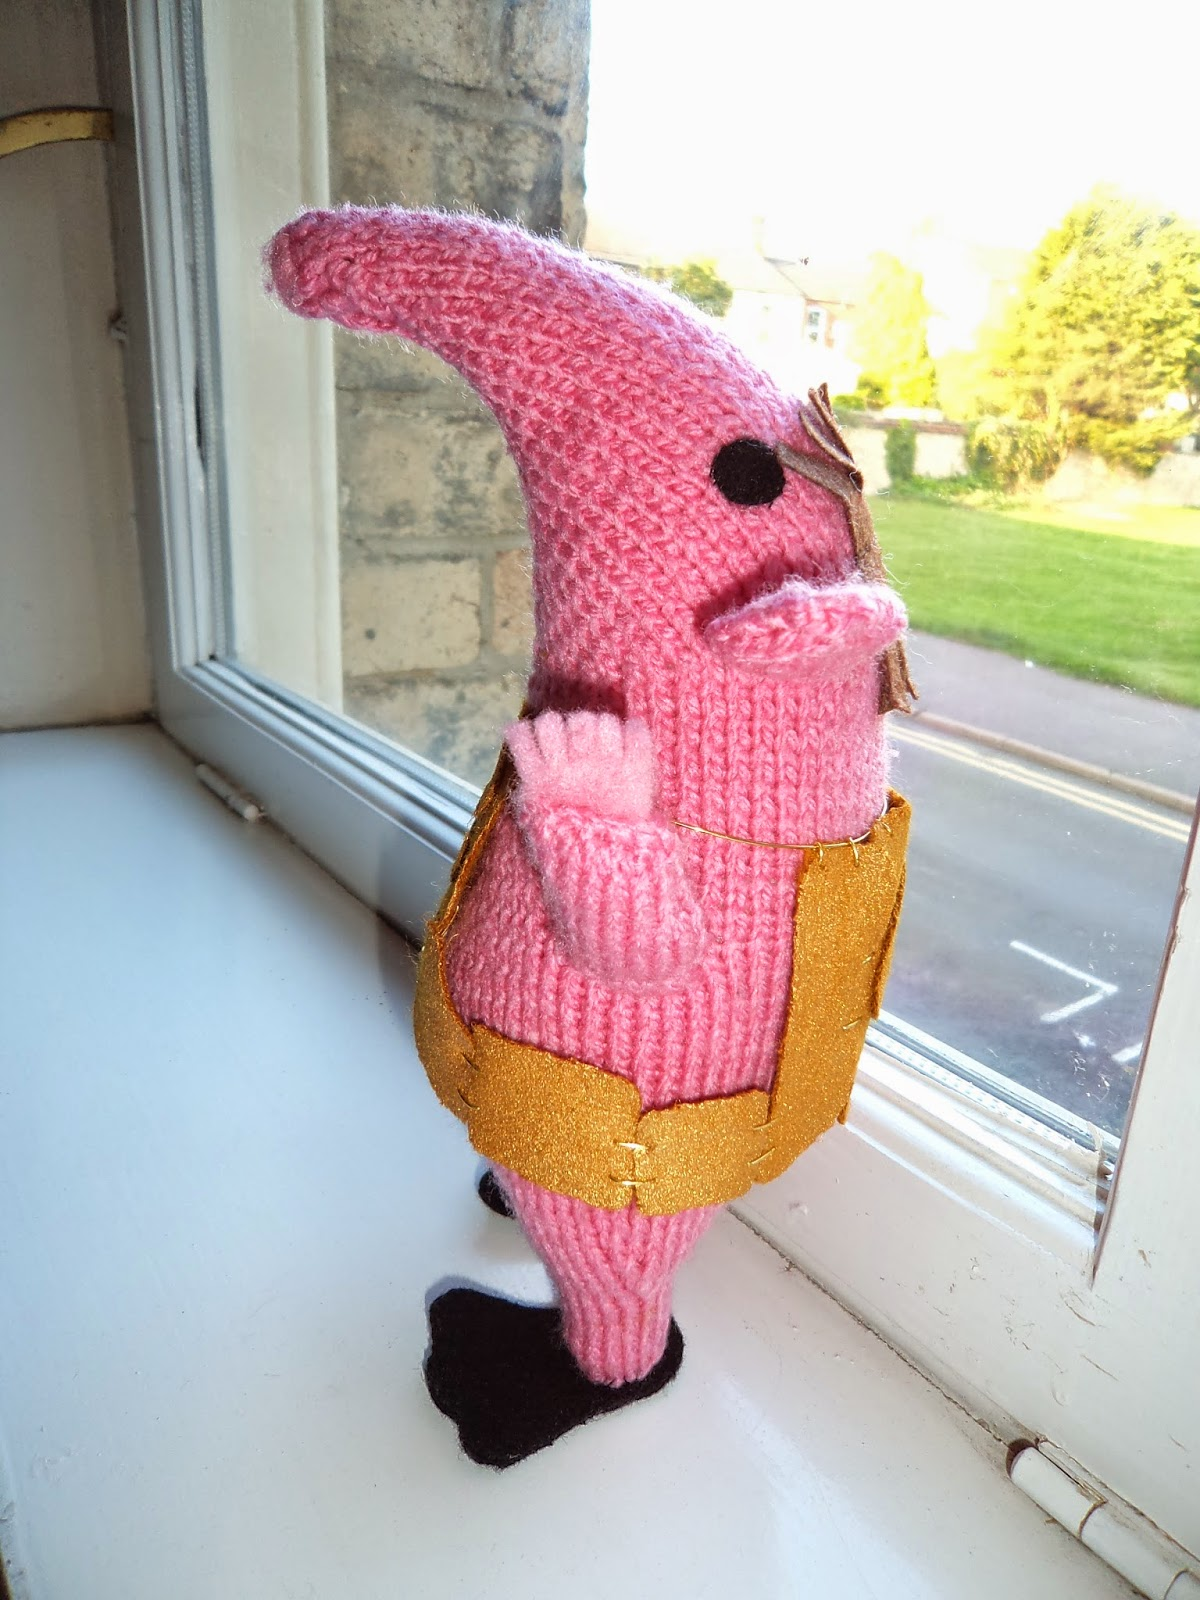 Through The Looking Glass: Major Knitting of Major Clanger